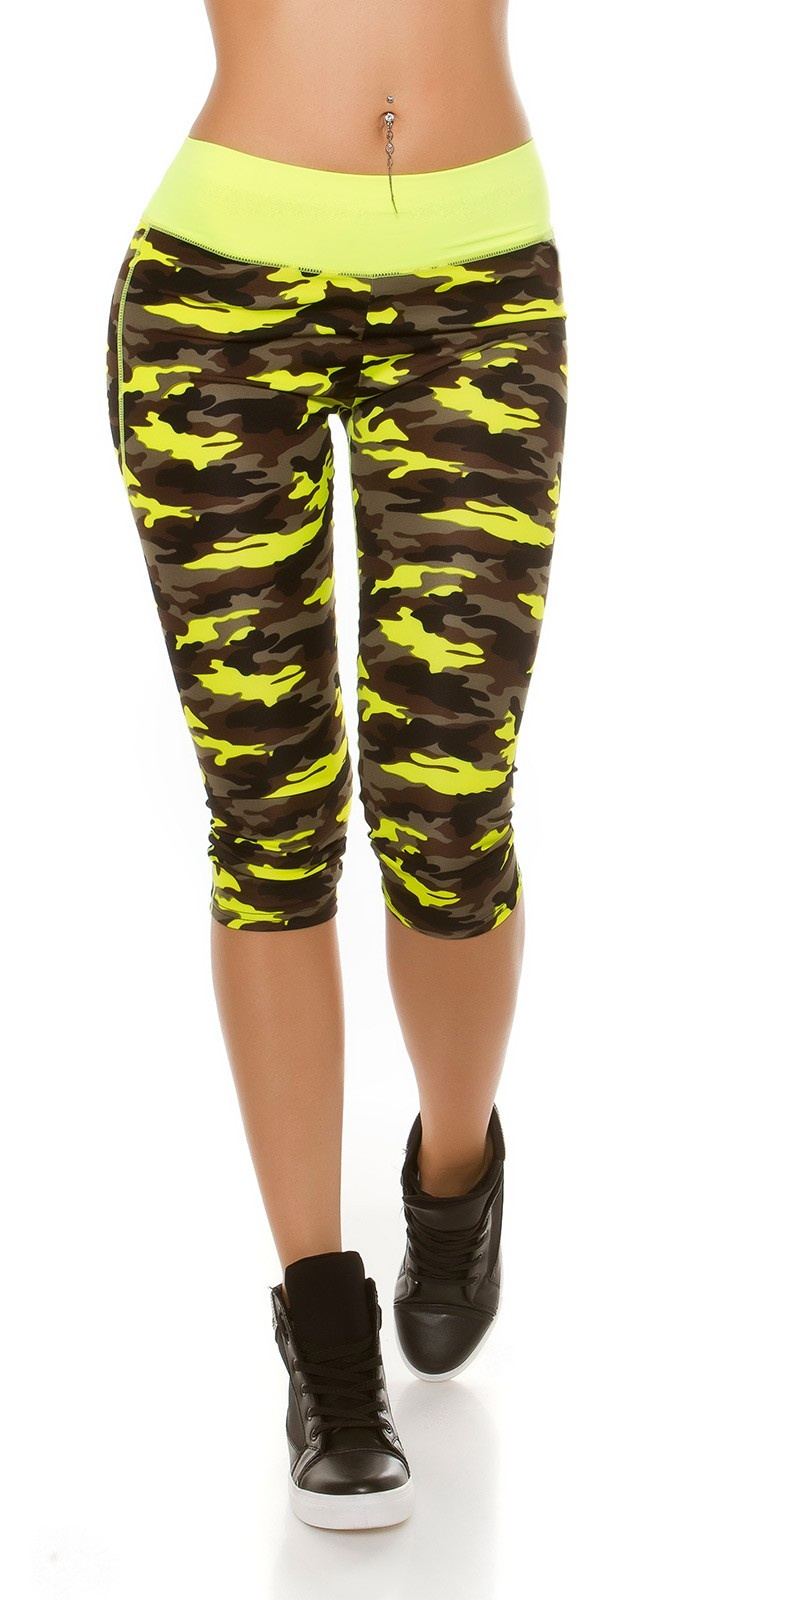 Trendy Workout Capri Leggings in Camouflage Neonyellow